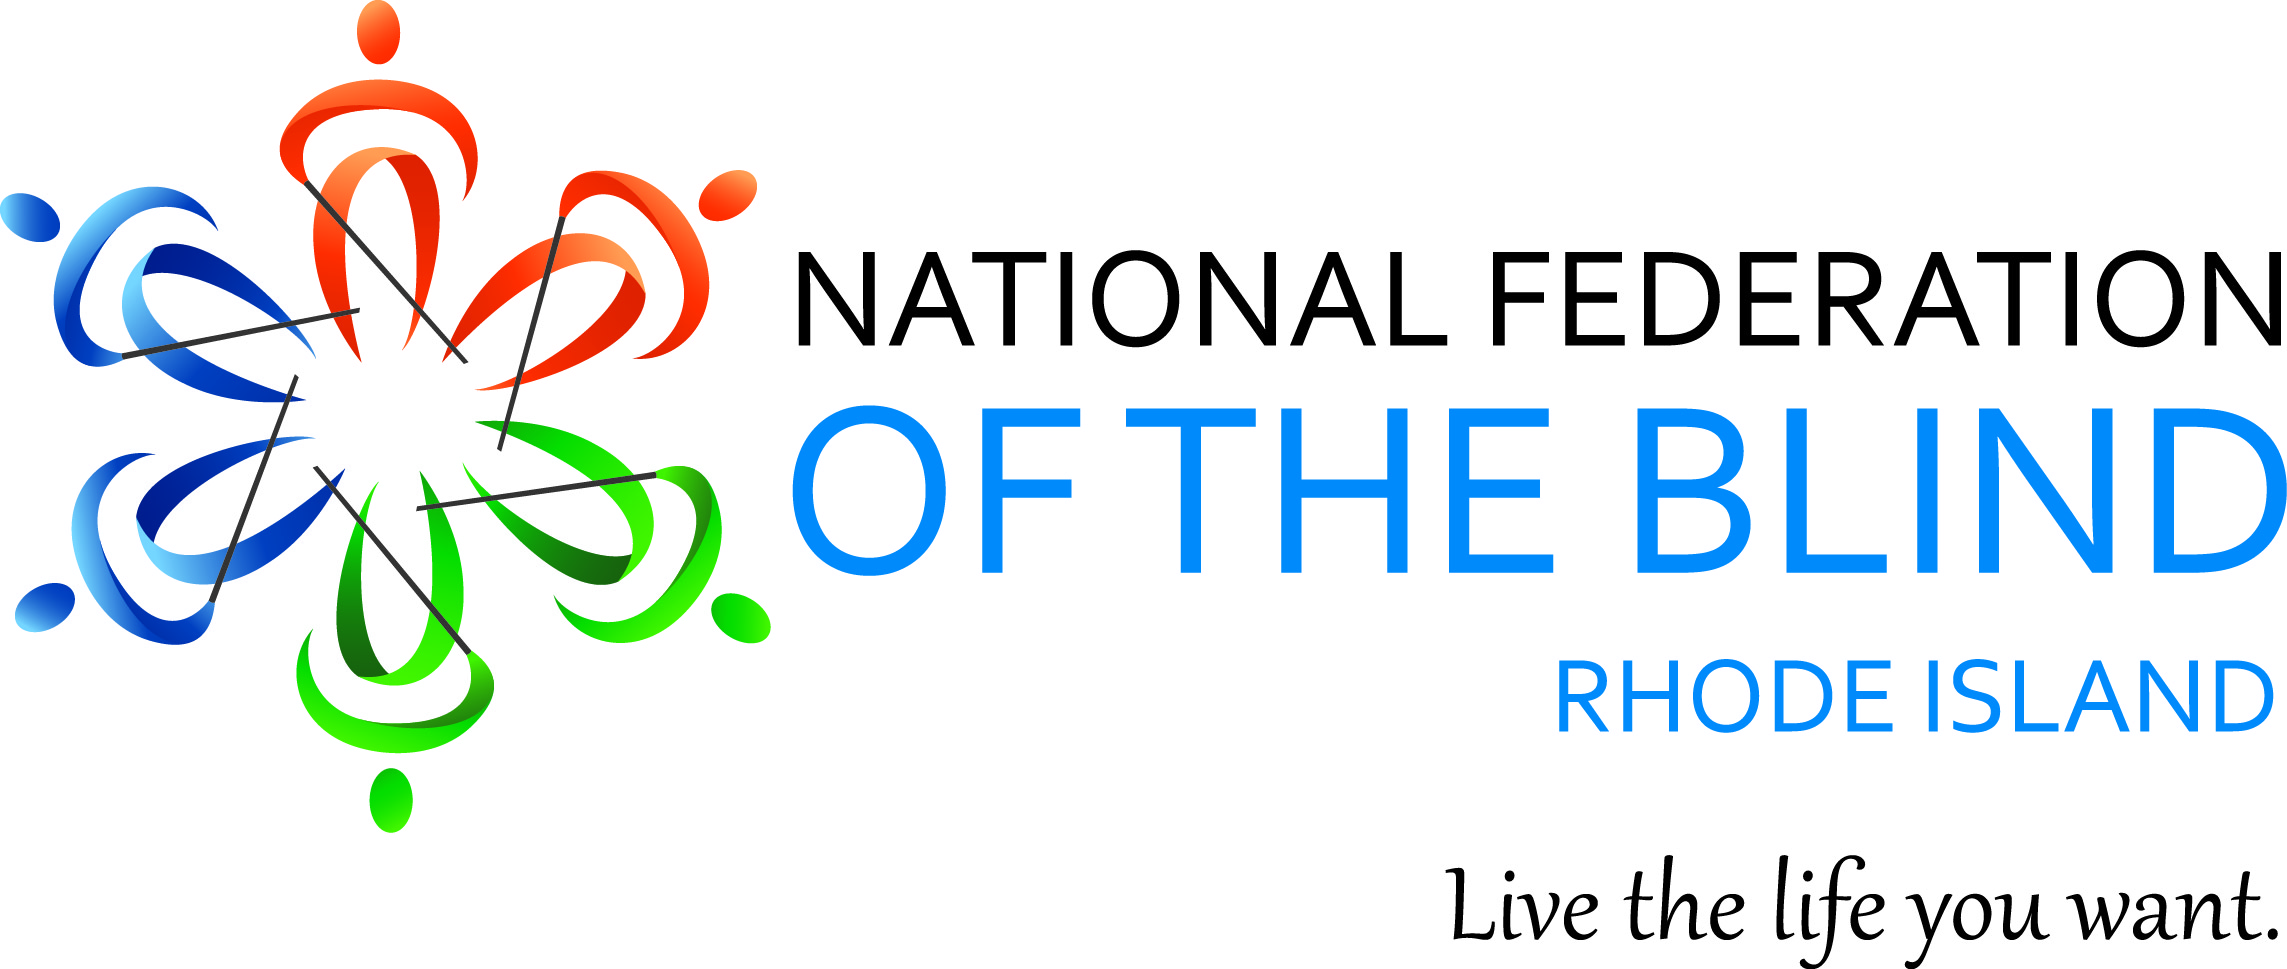 National Federation of the Blind of Rhode Island 